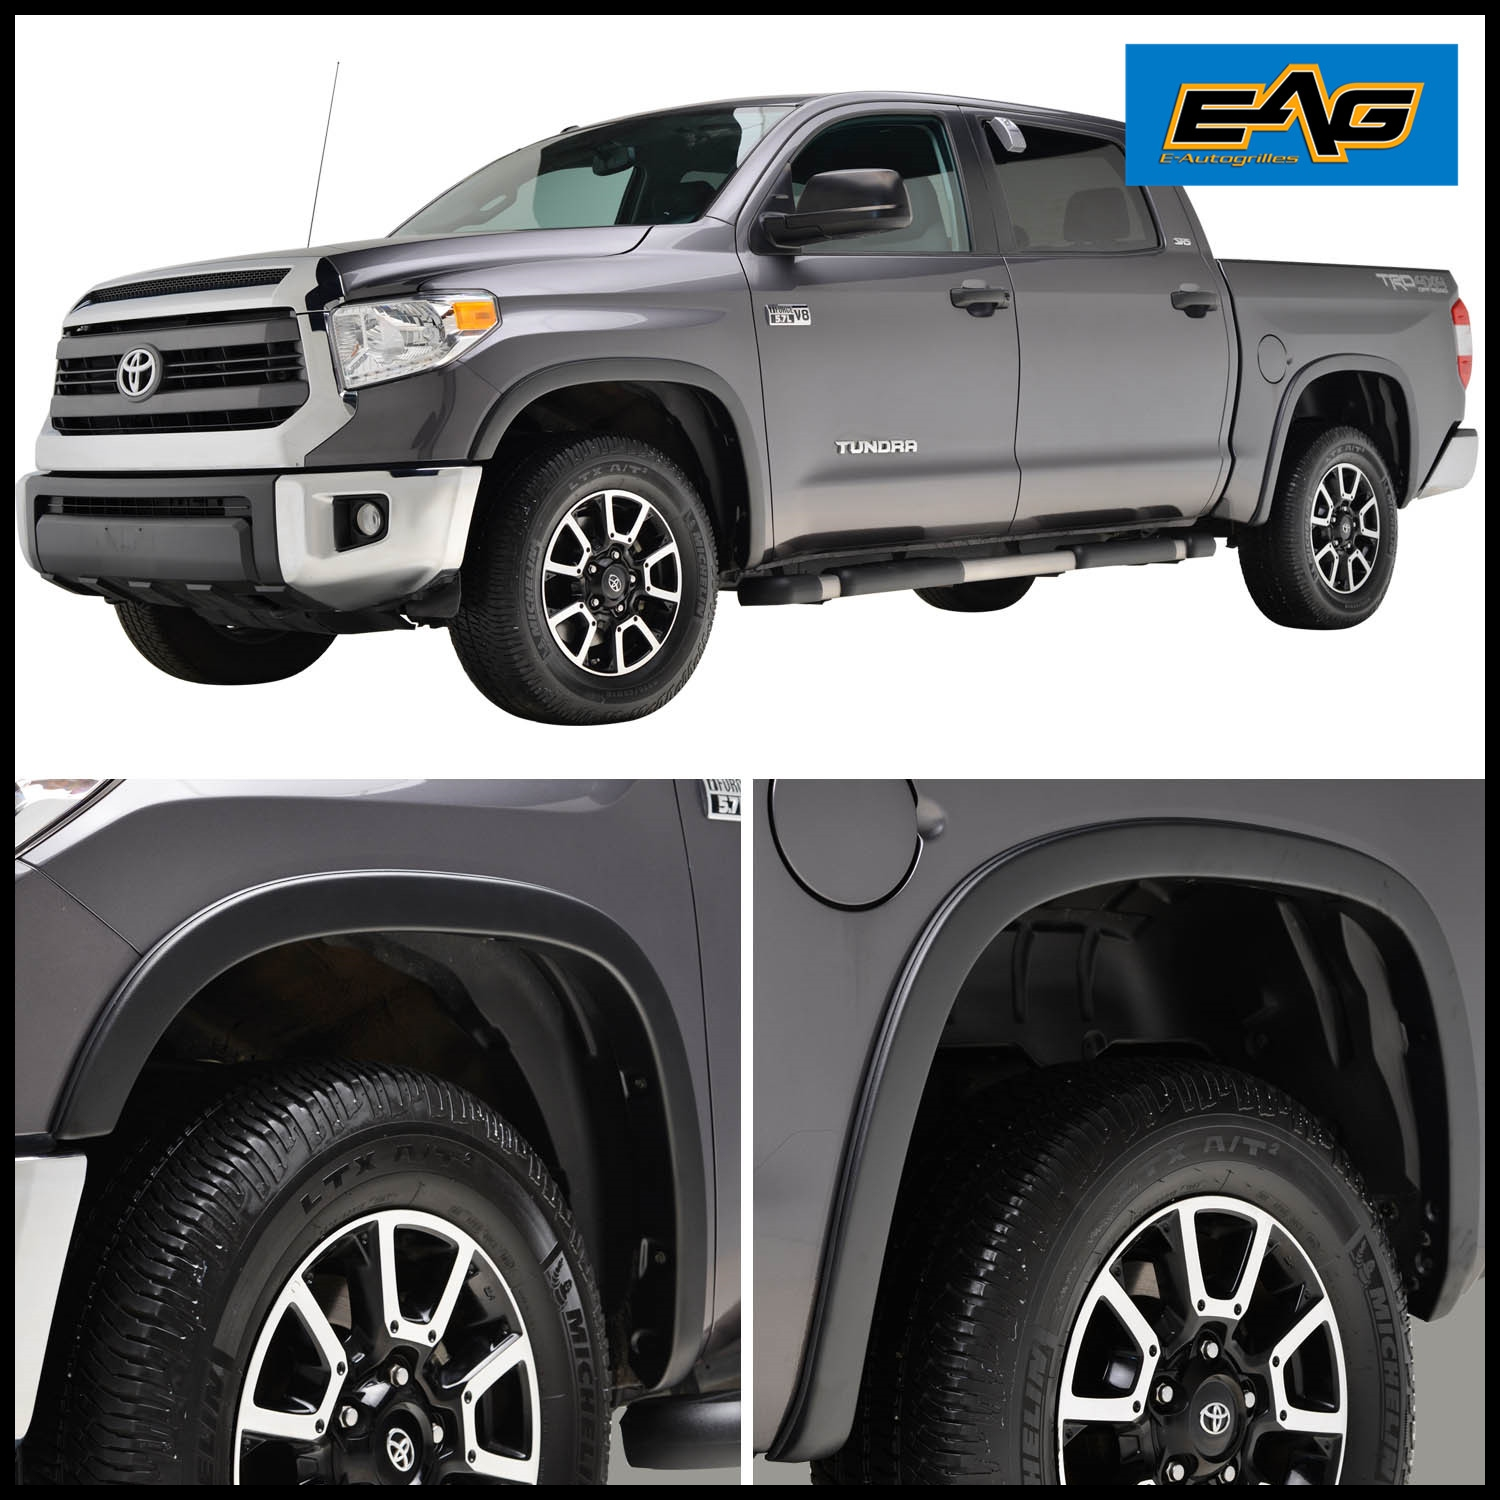 EAG Textured Satin Black Styline Series 4PC Fender Flare for 14 17 Toyota Tundra